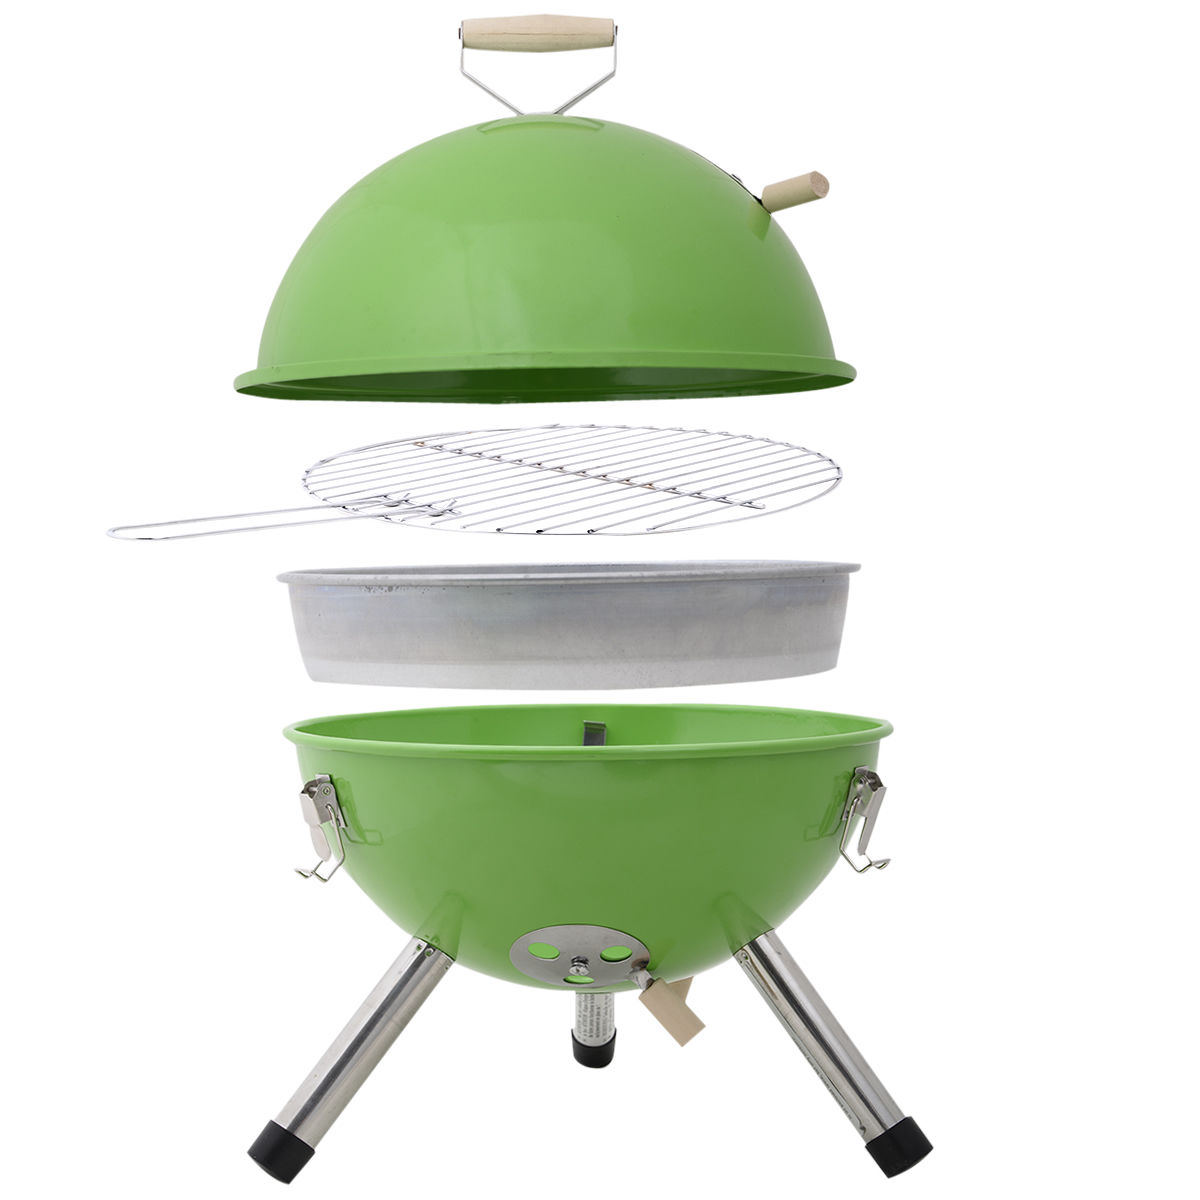 Small Movable Kitchen Island For Sale Thinc Technology: Popular Barbecue Grill Charcoal-Buy Cheap Barbecue Grill